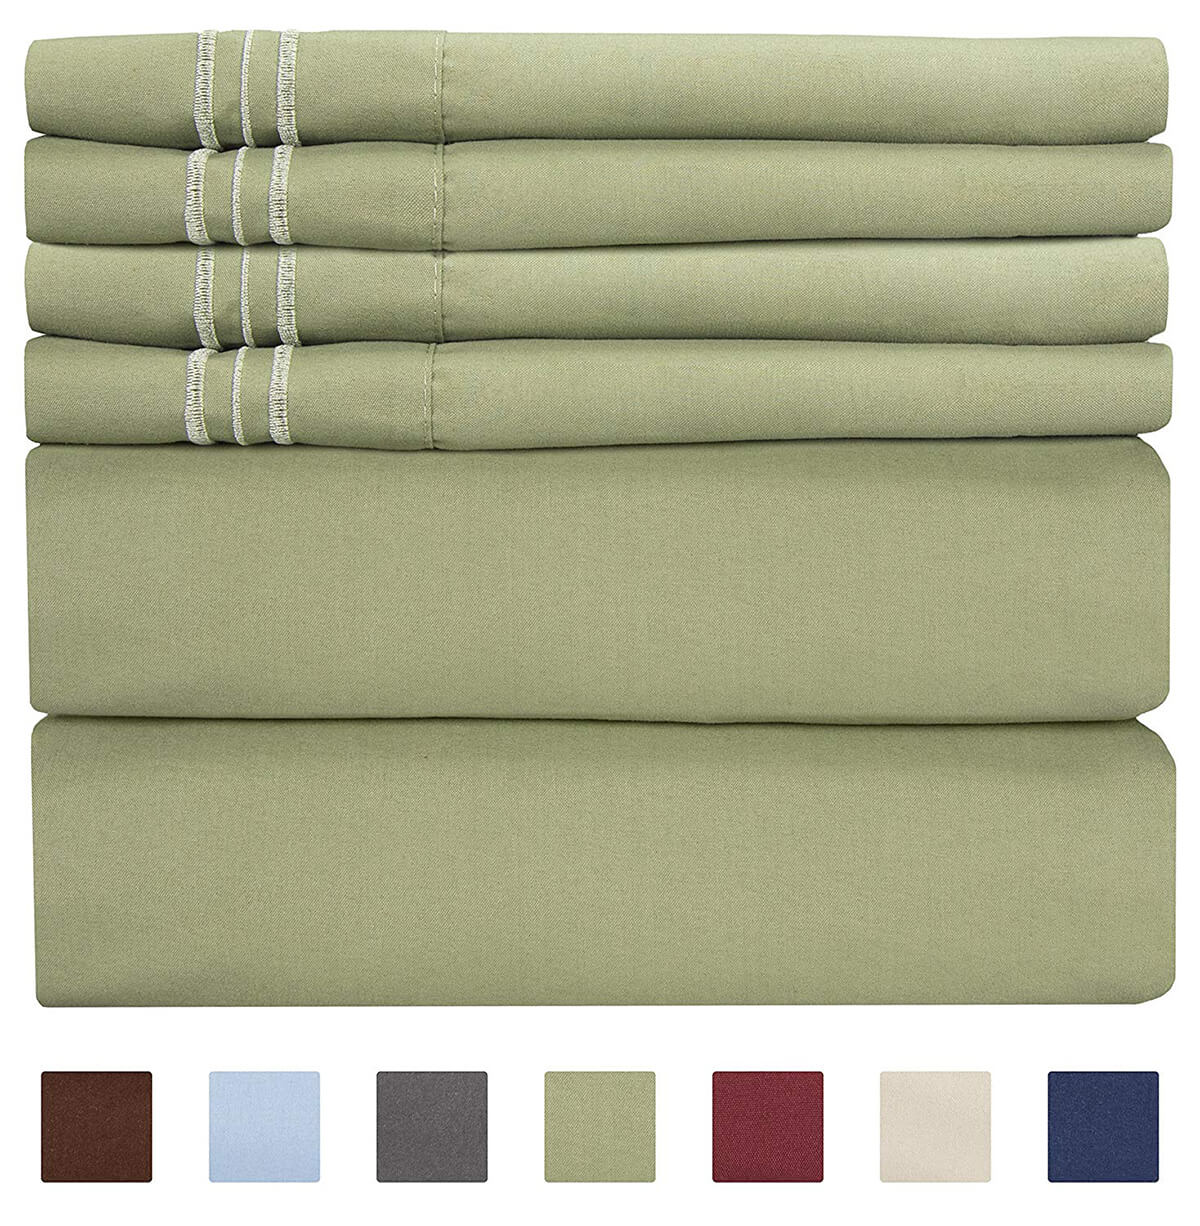 Queen Size Hotel Luxury Bed Sheet Set